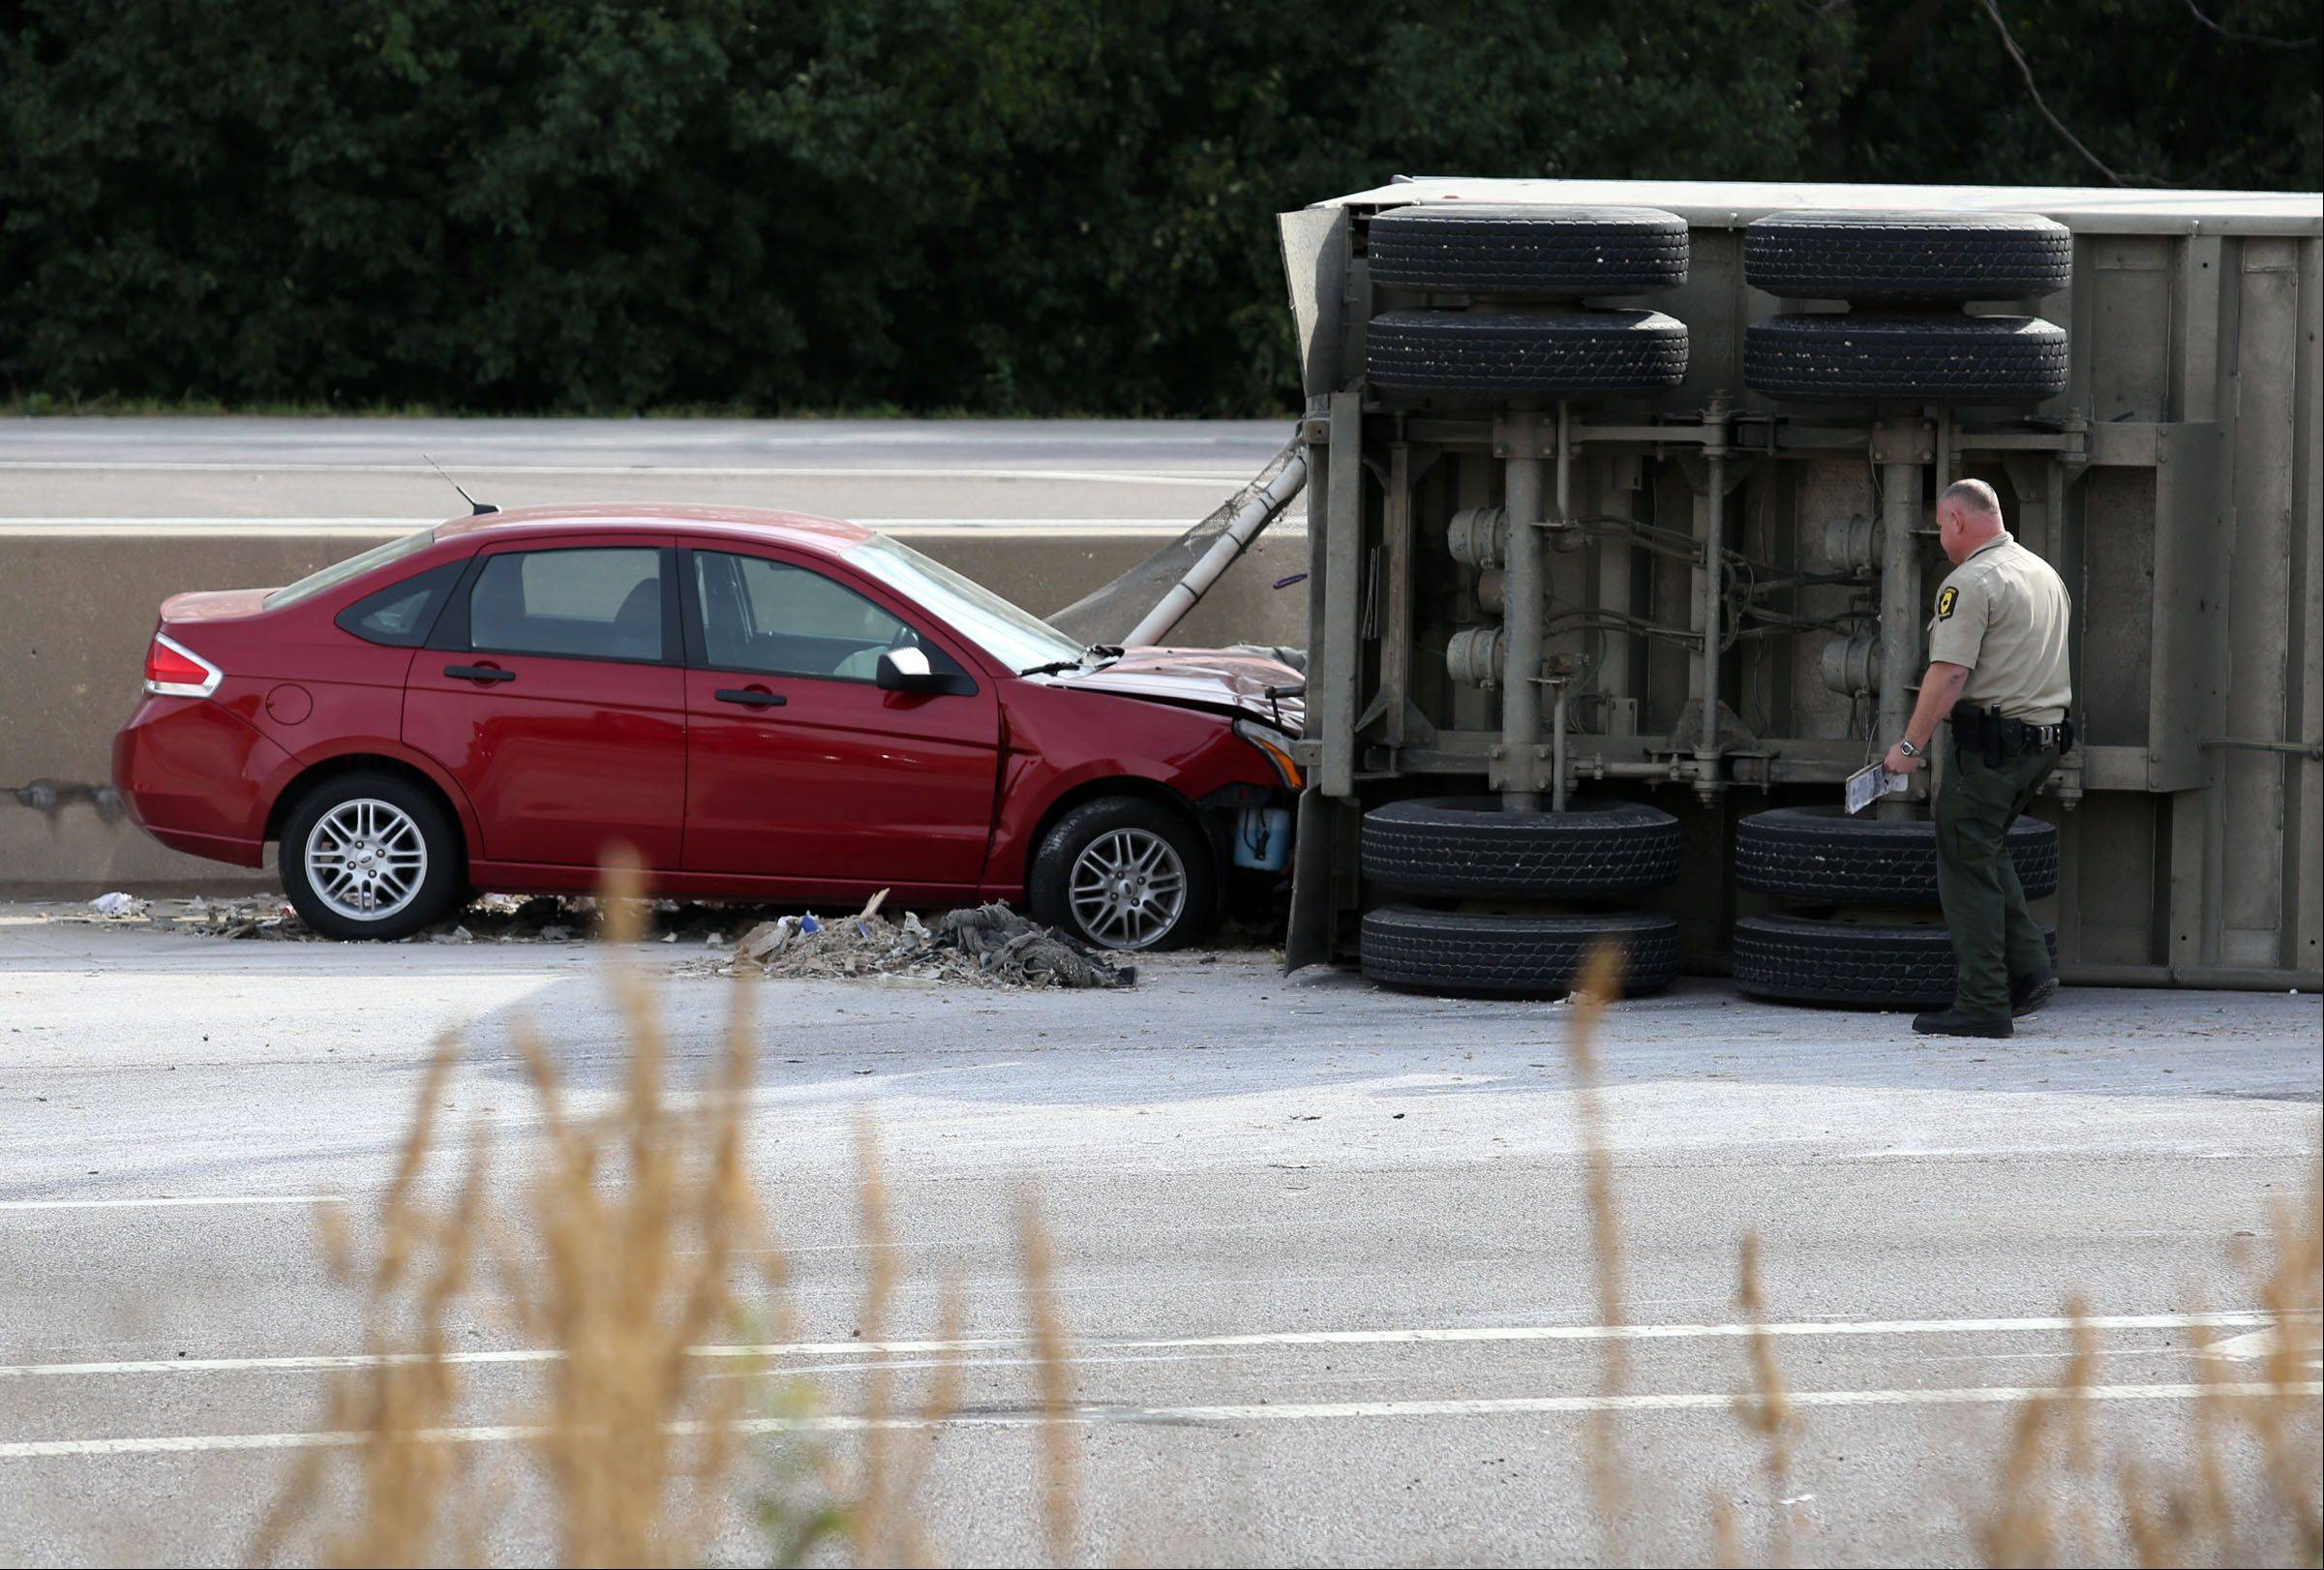 A car was involved in an accident when a semi truck rolled over on southbound Route 53 just south of Euclid Avenue on Tuesday morning. The crash caused long delays on Route 53.